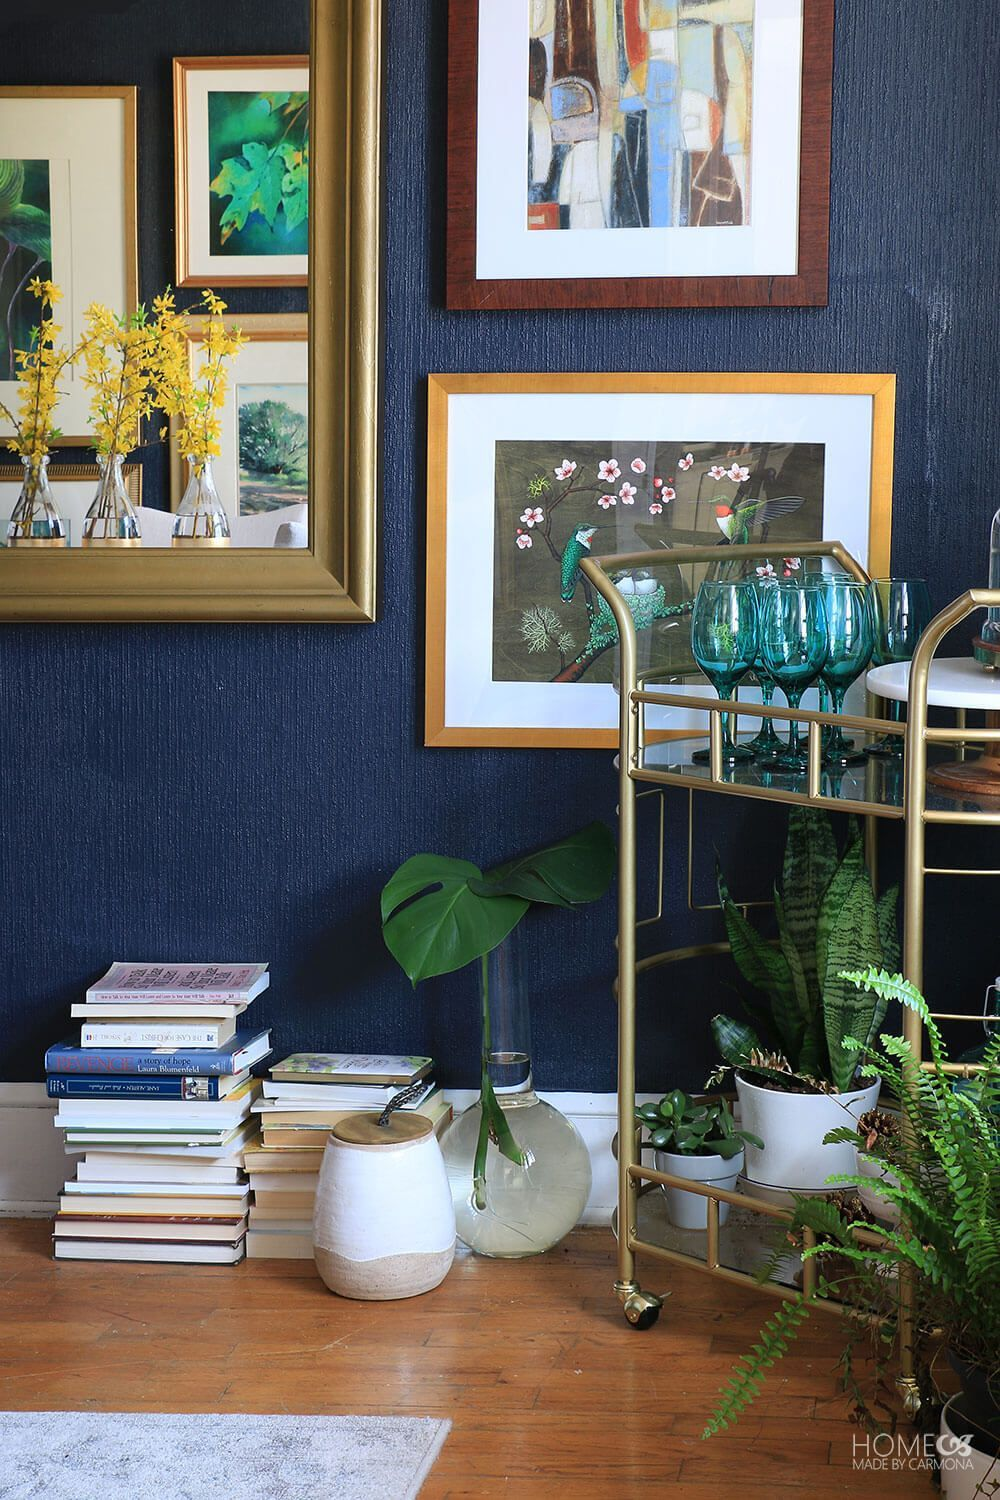 Get Some Great Ideas To Decorate Your Home For Spring With This